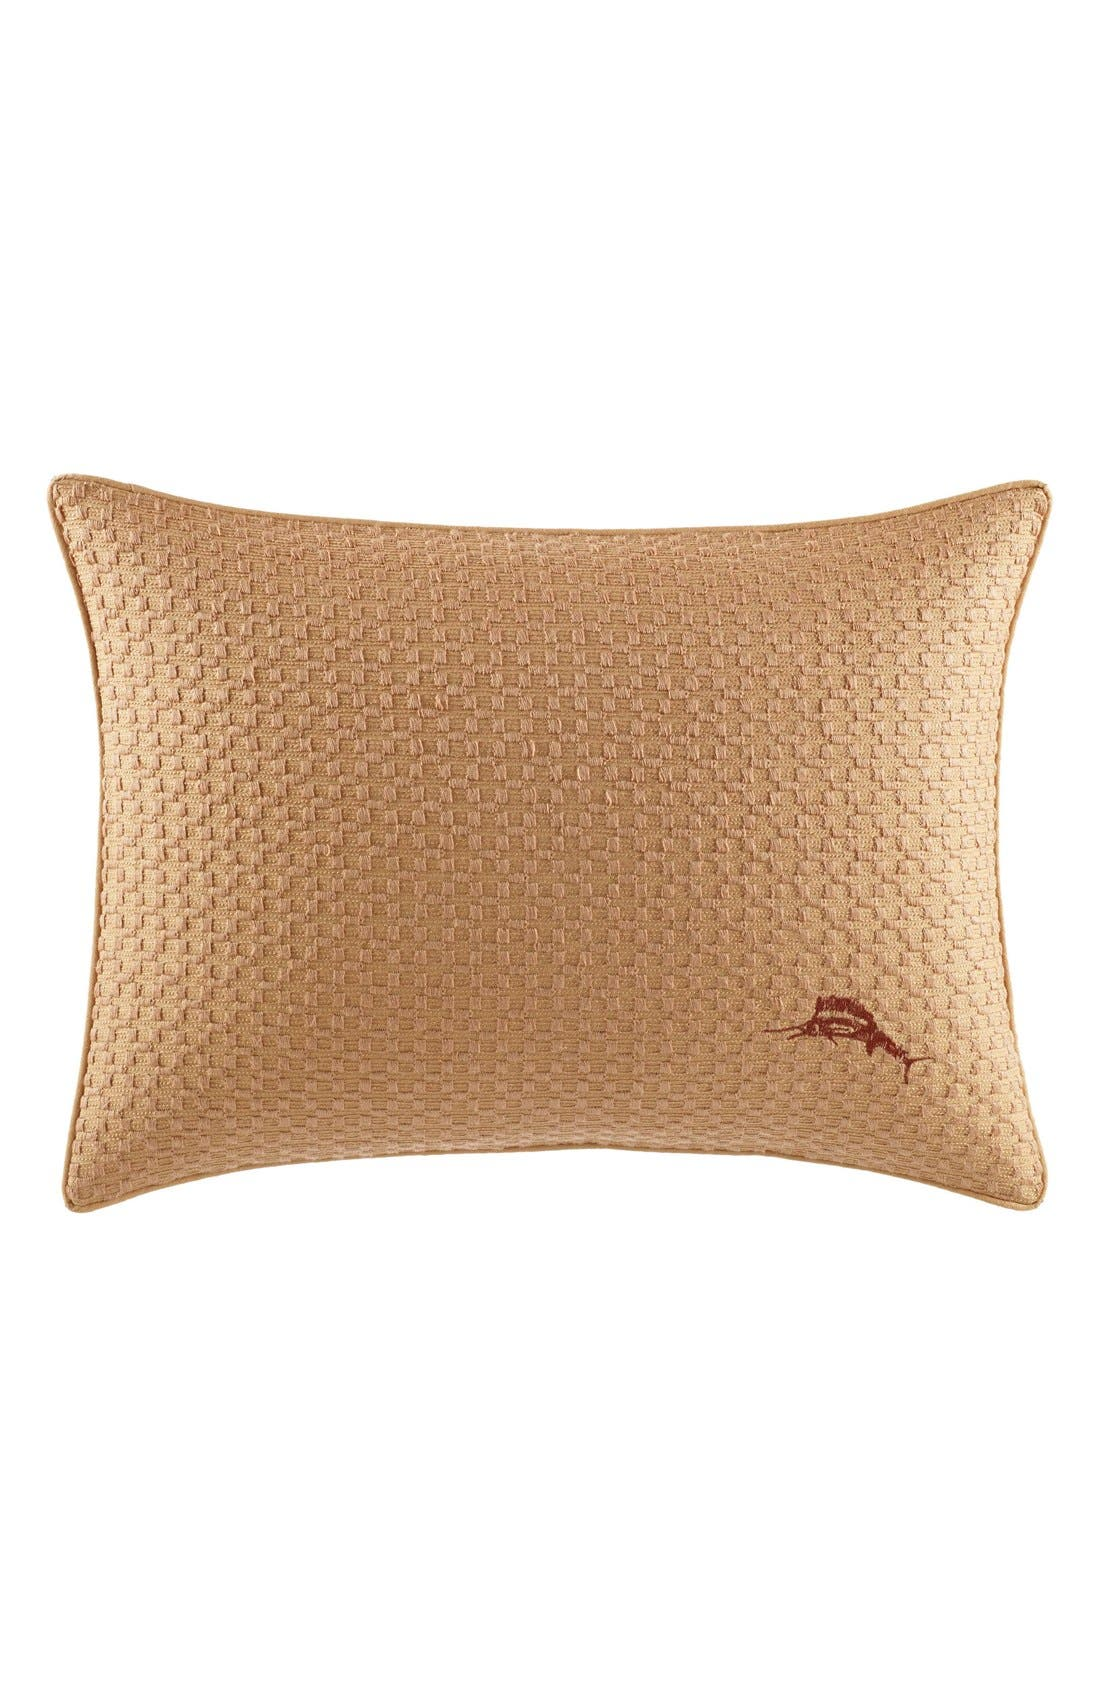 Alternate Image 1 Selected - Tommy Bahama Cayo Coco Pillow